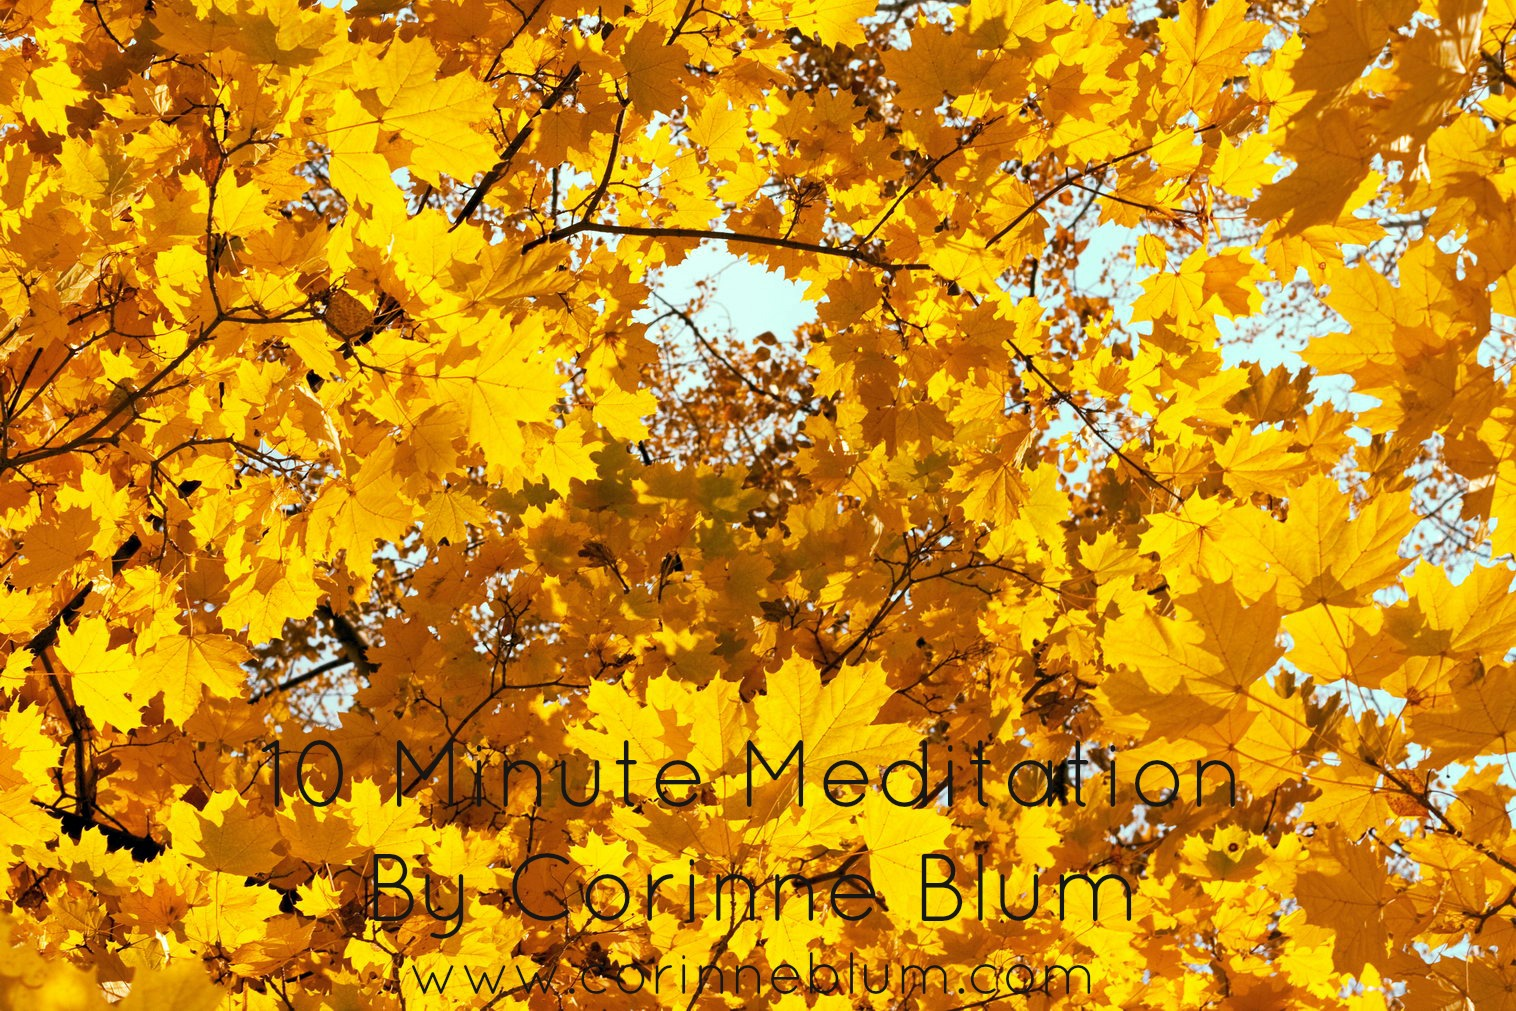 10 Minute Guided Meditation by Corinne Blum